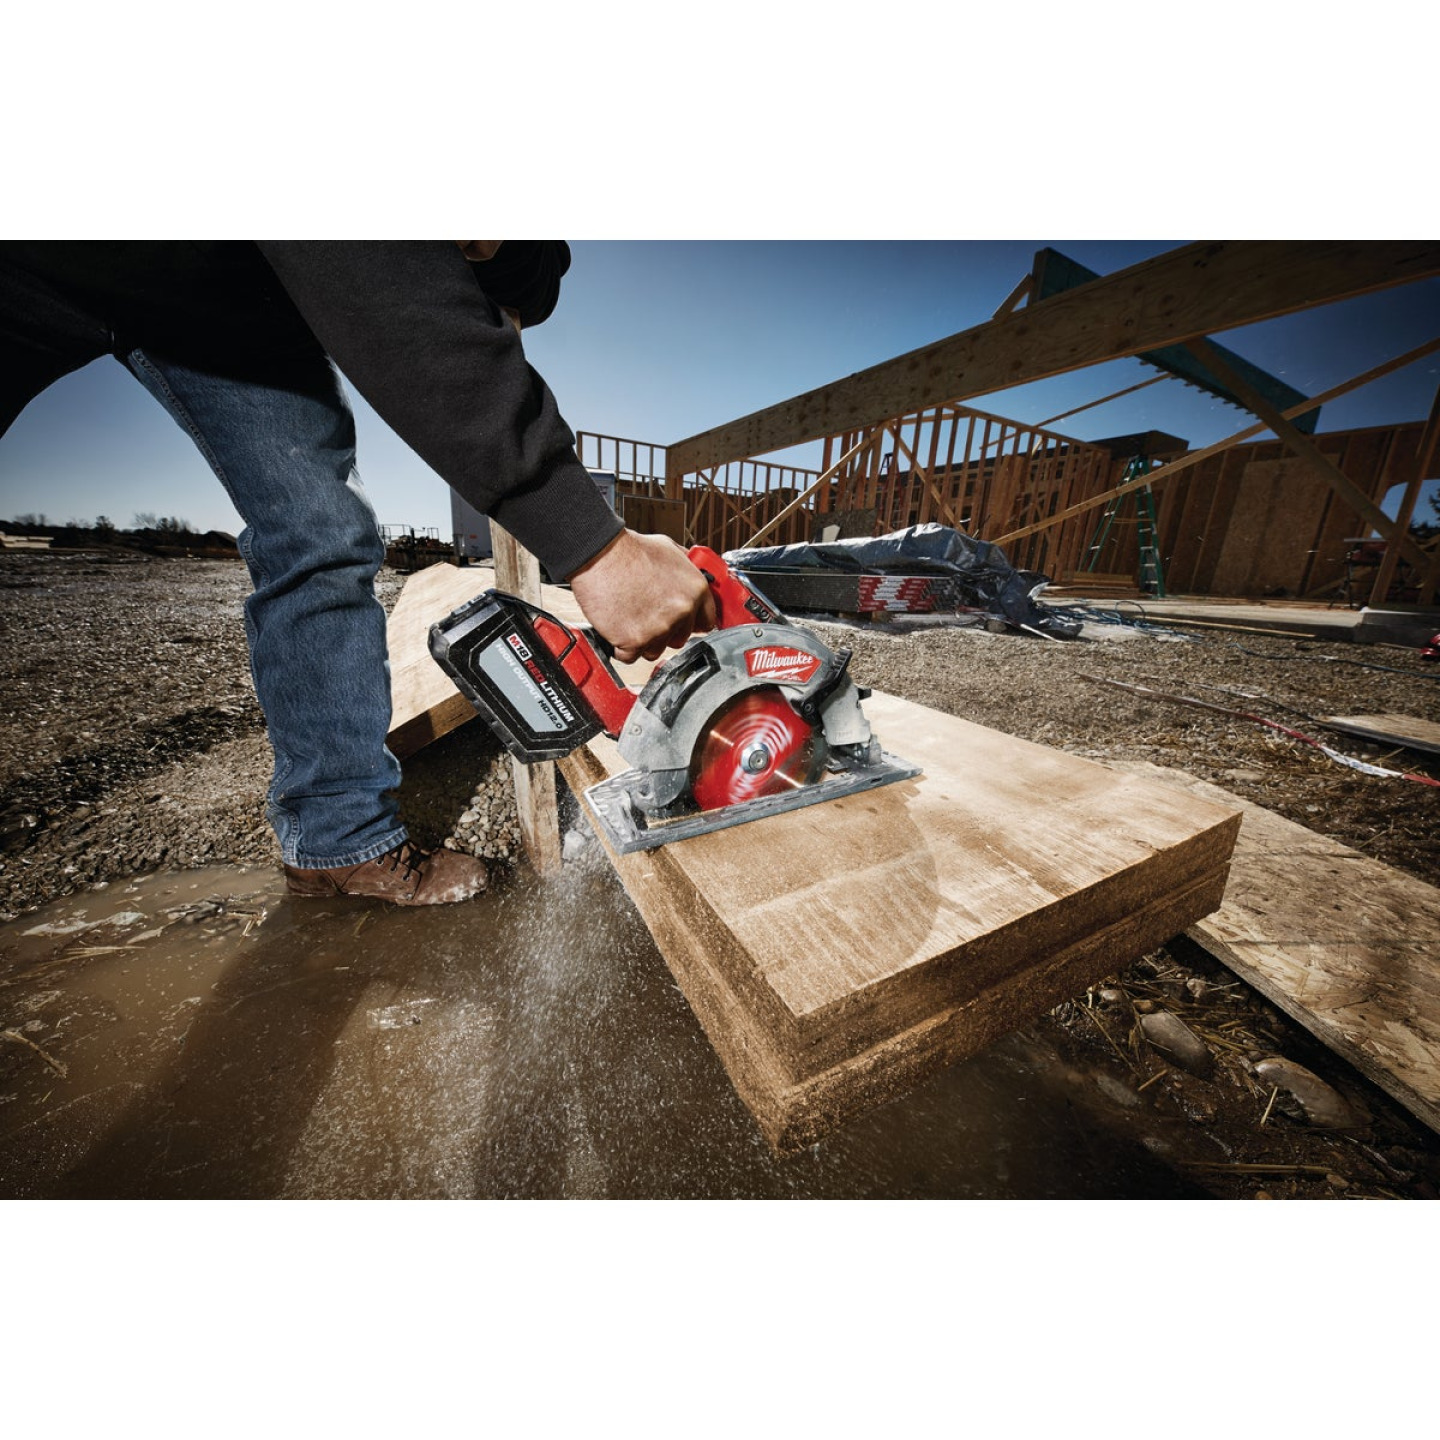 Milwaukee M18 FUEL 18 Volt Lithium-Ion Brushless 7-1/4 In. Cordless Circular Saw Kit Image 3